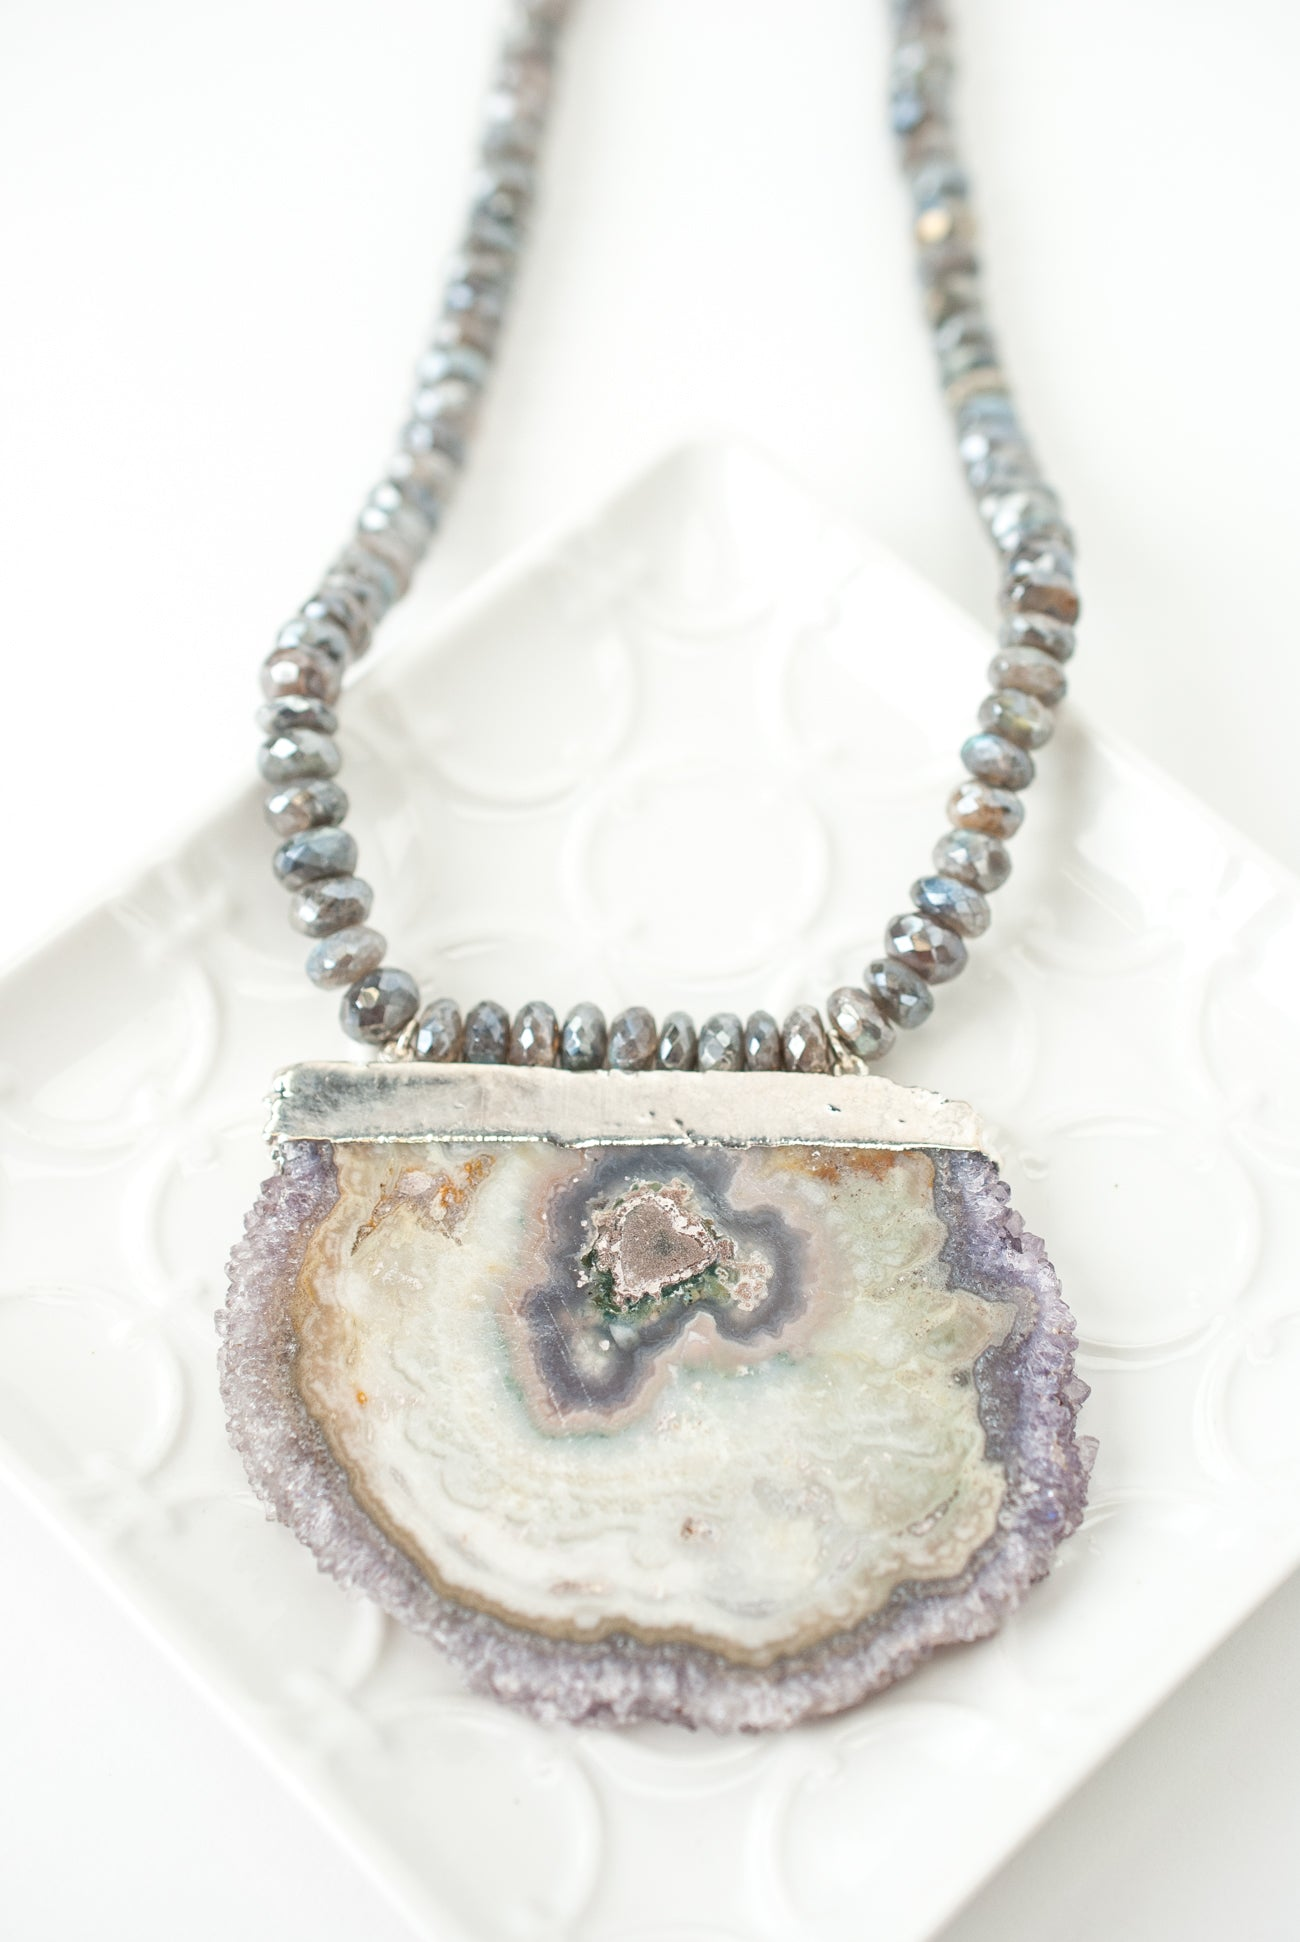 "*One of a Kind 34-36"" Labradorite and Mineral Slice Focal Necklace"